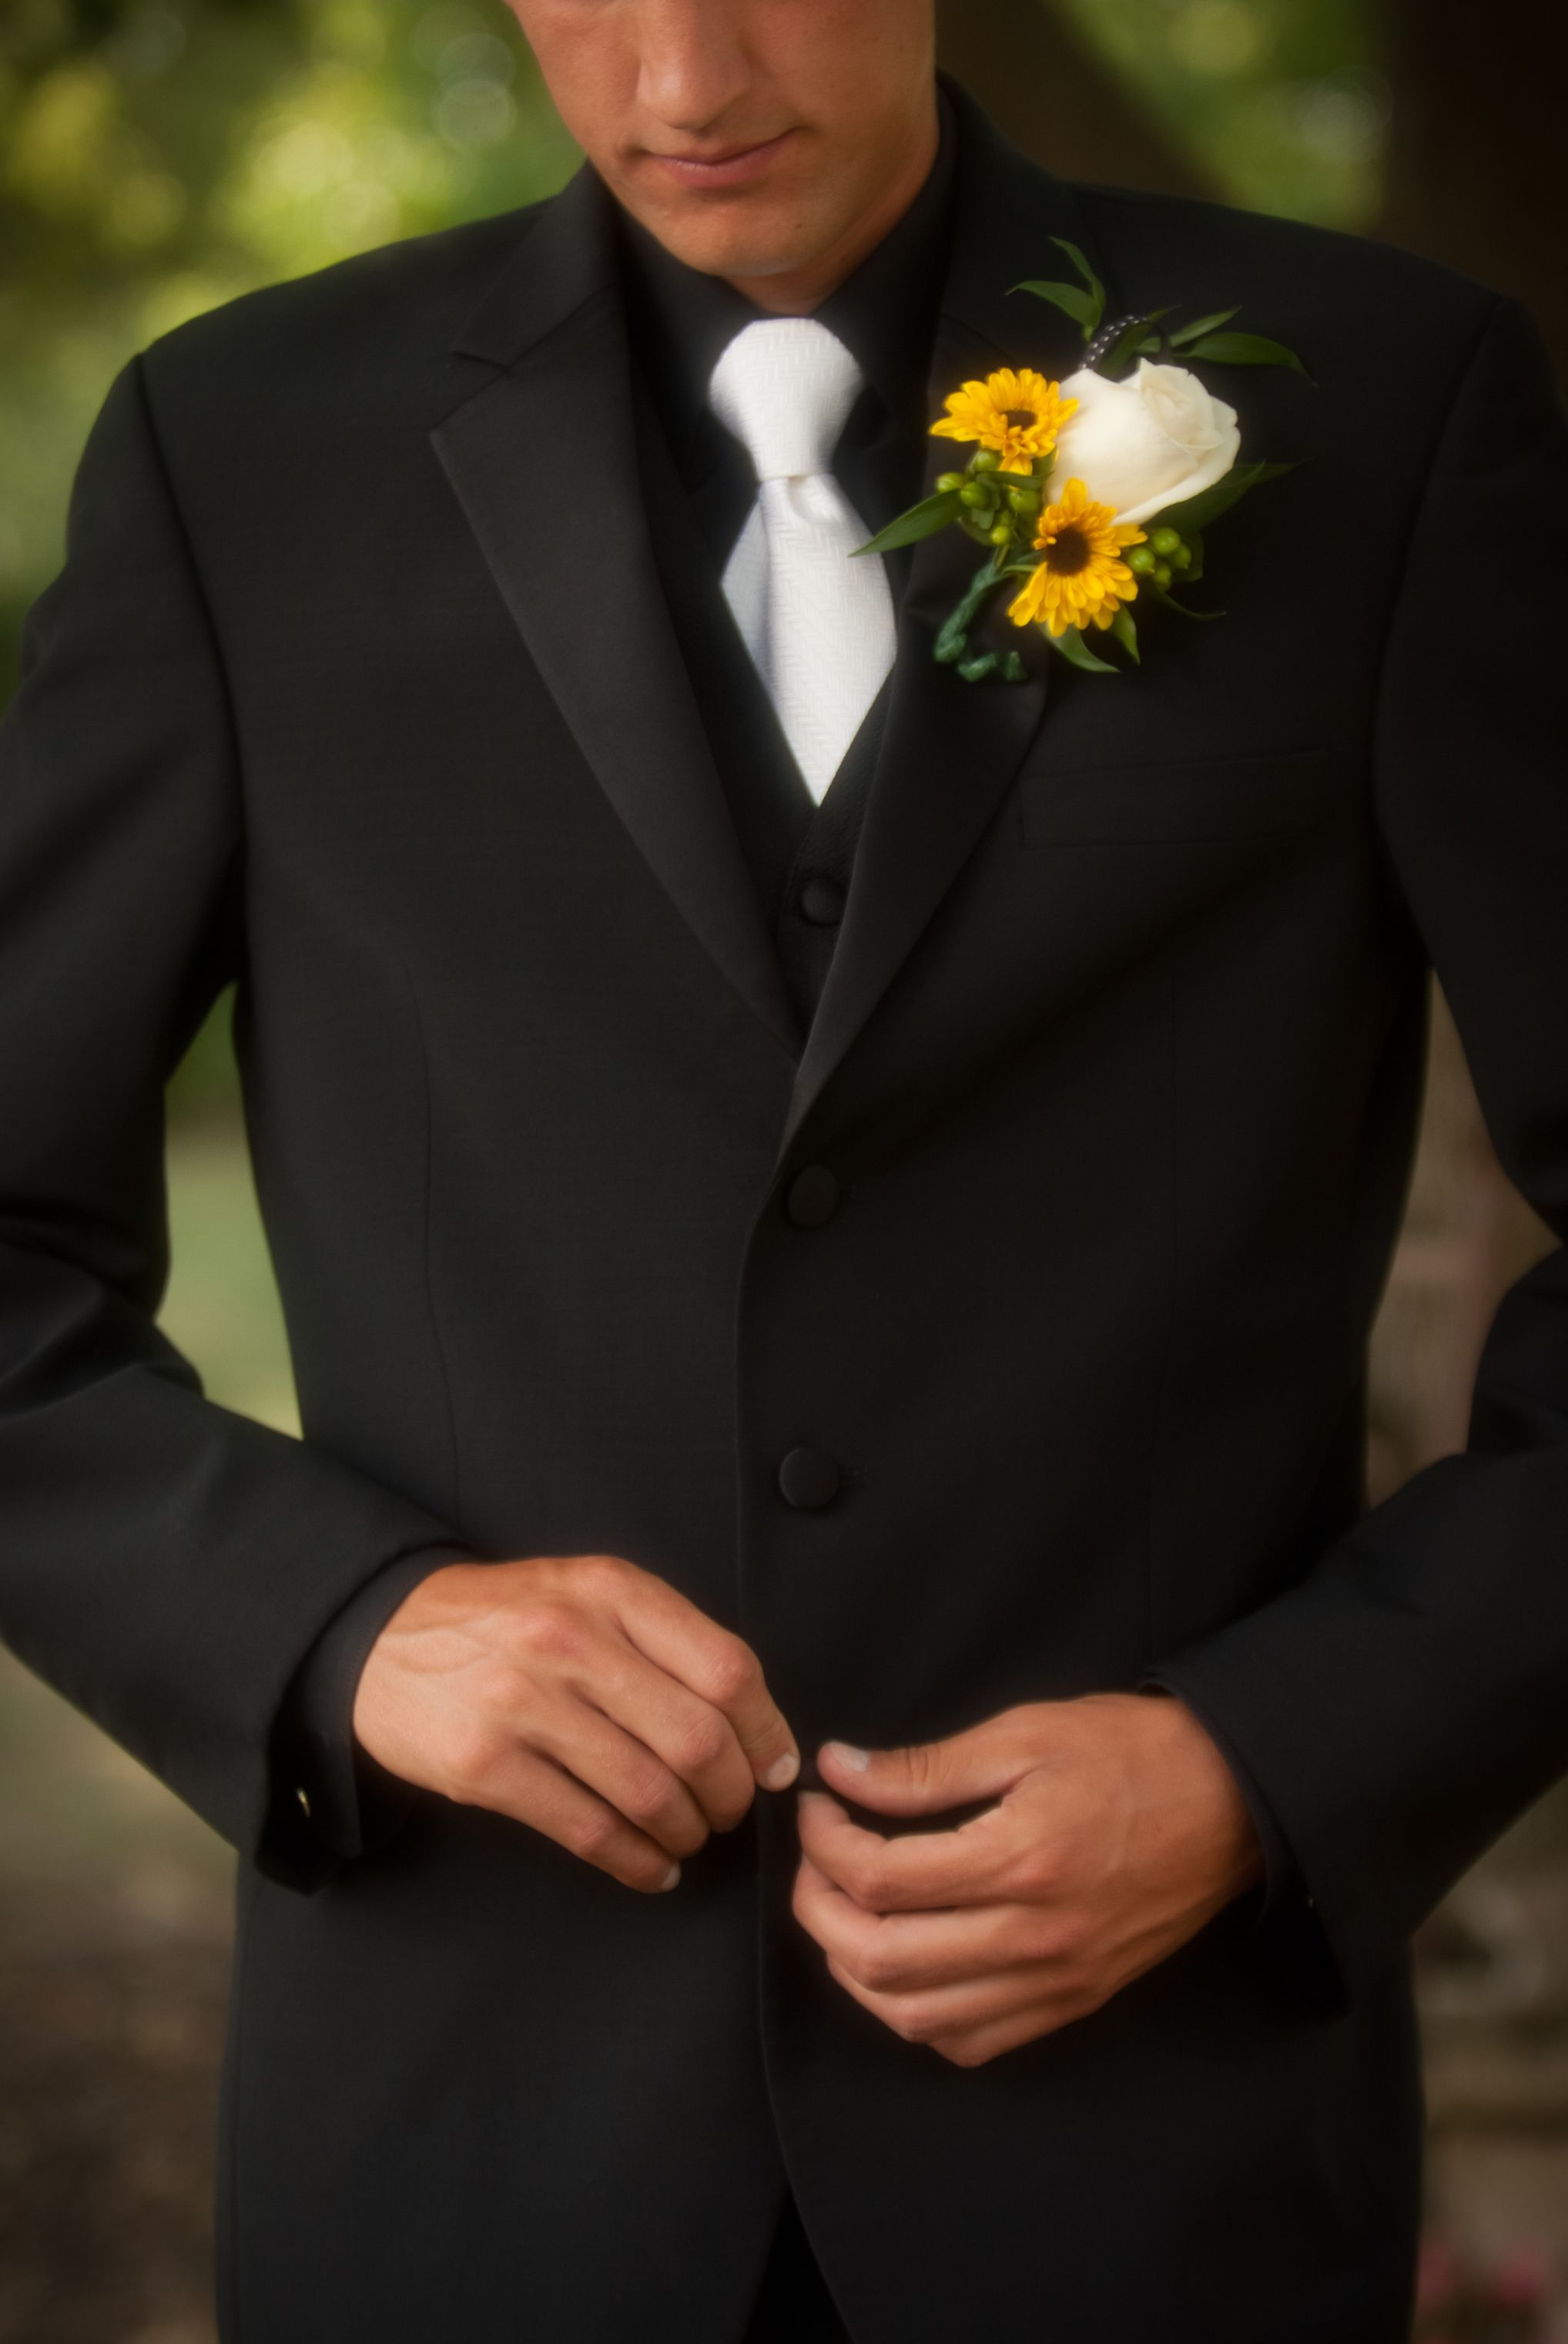 The groom. Sunflower flowers. Black with white tie. | My DIY ...